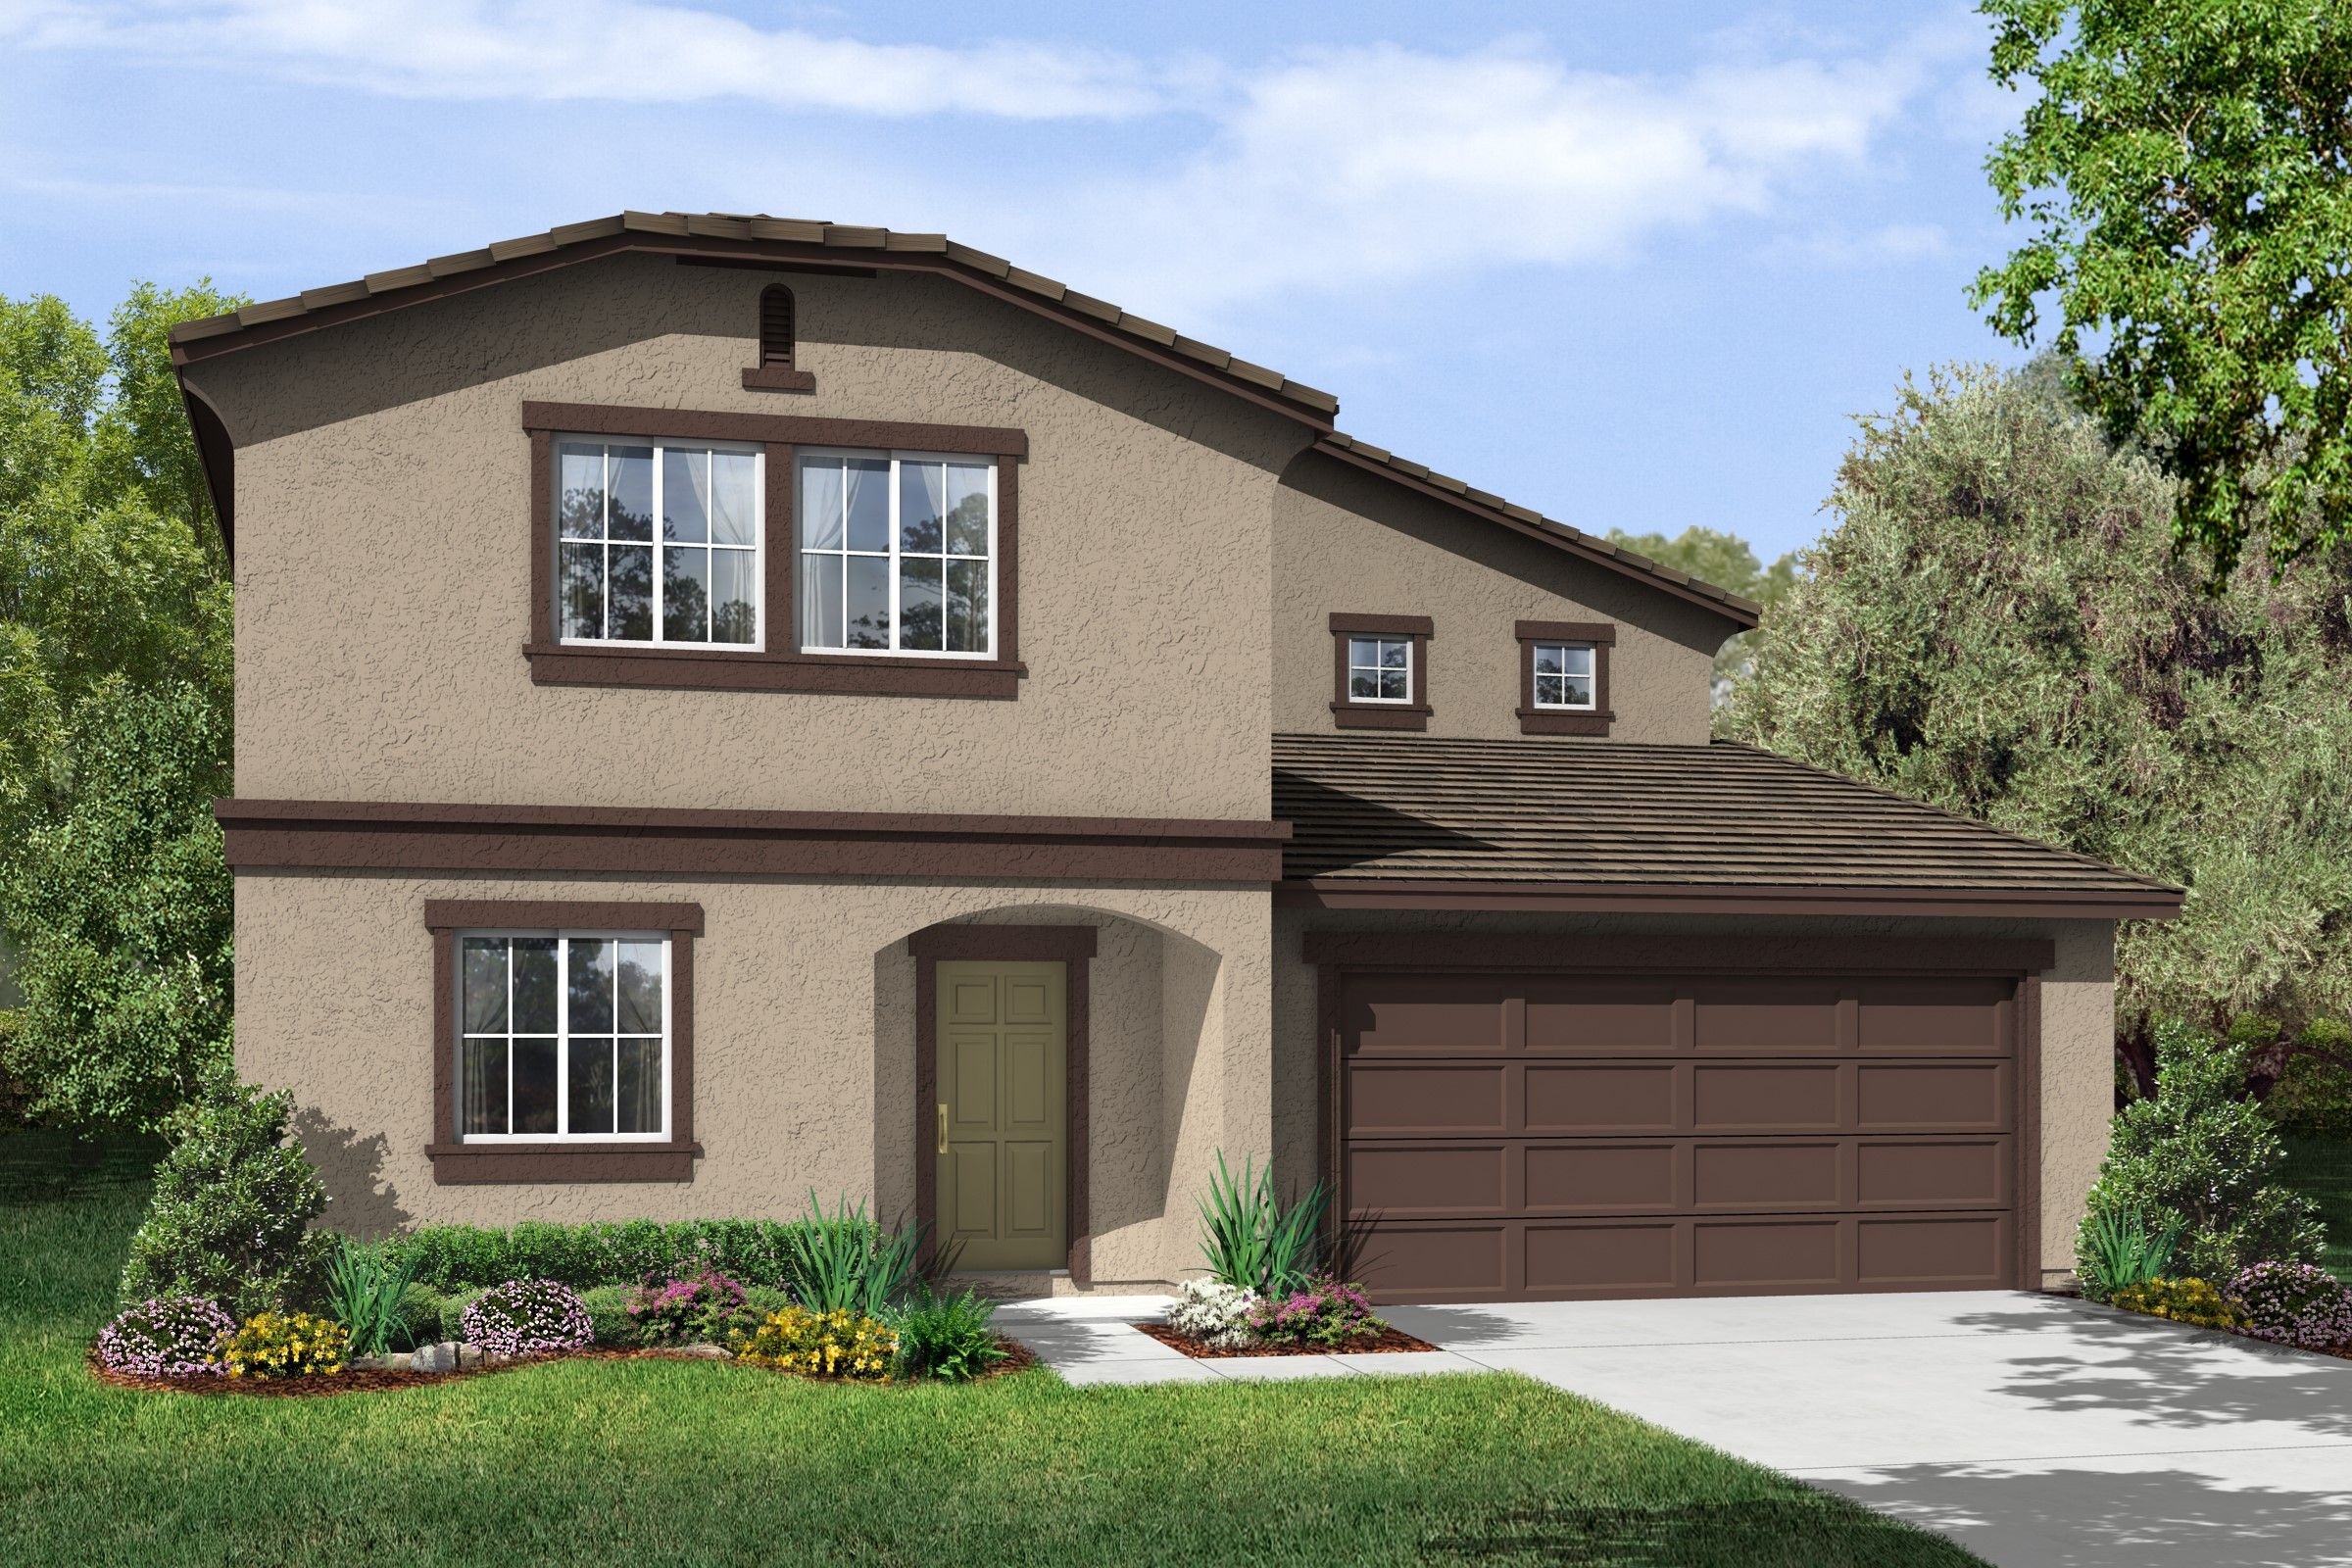 Single Family for Sale at Aspire - Sol 2101 Rayo Del Luna Drive Arvin, California 93203 United States